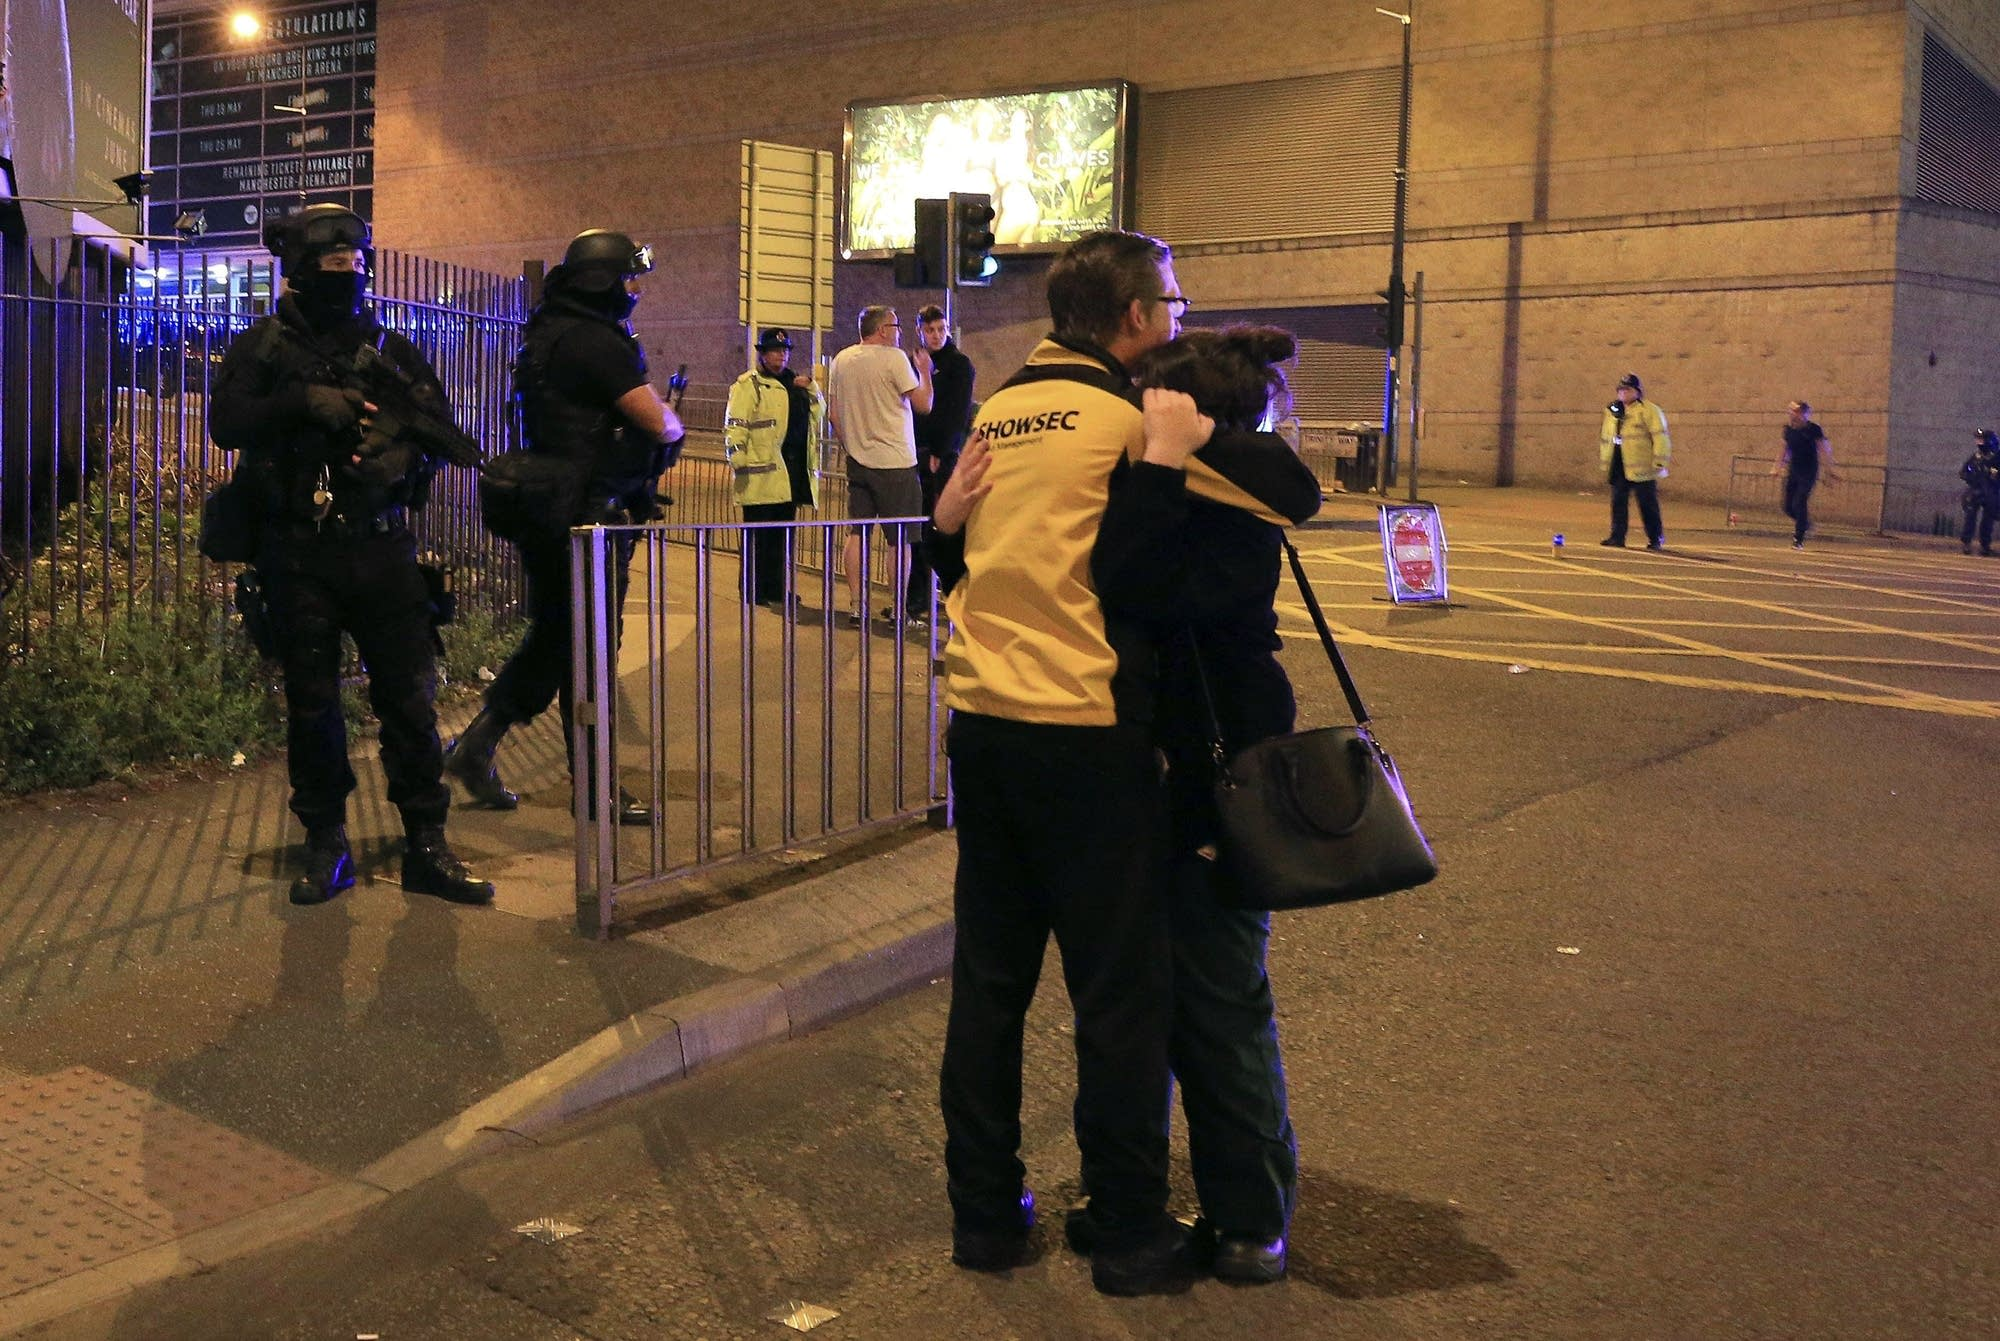 Uk police 19 confirmed dead in blast at ariana grande concert armed police stand guard at manchester arena after reports of an explosion m4hsunfo